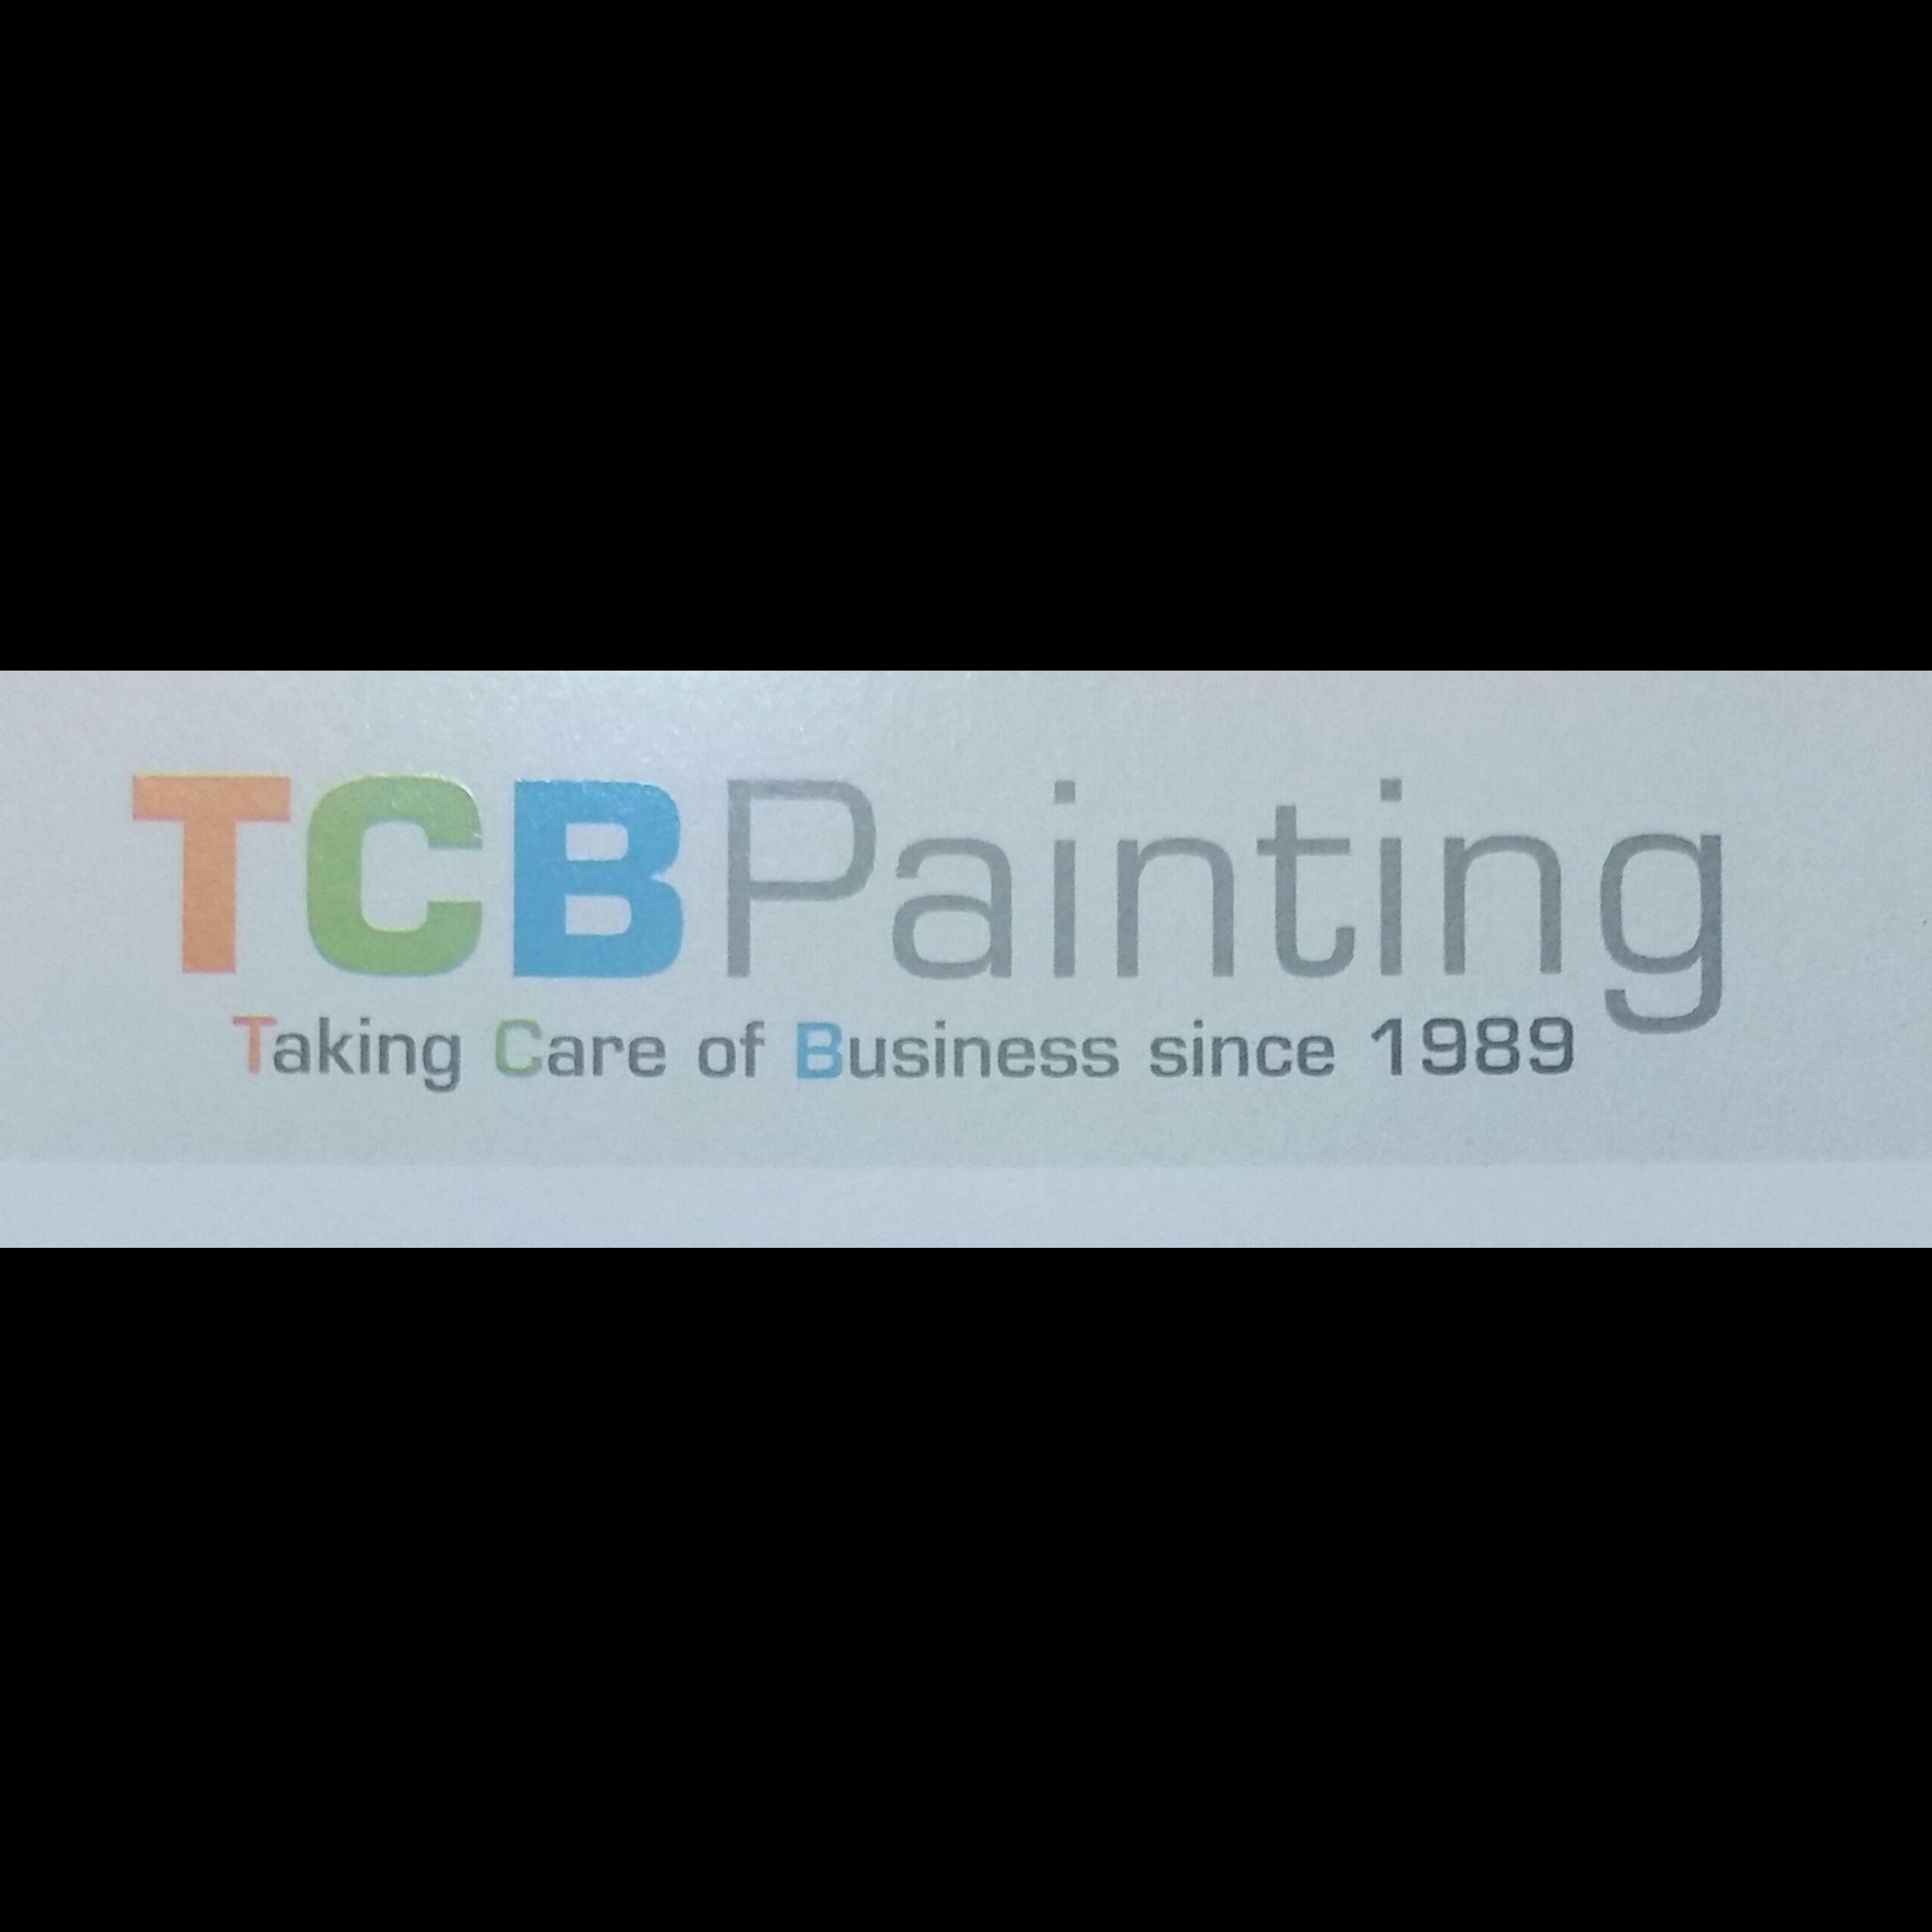 TCB Painting image 5